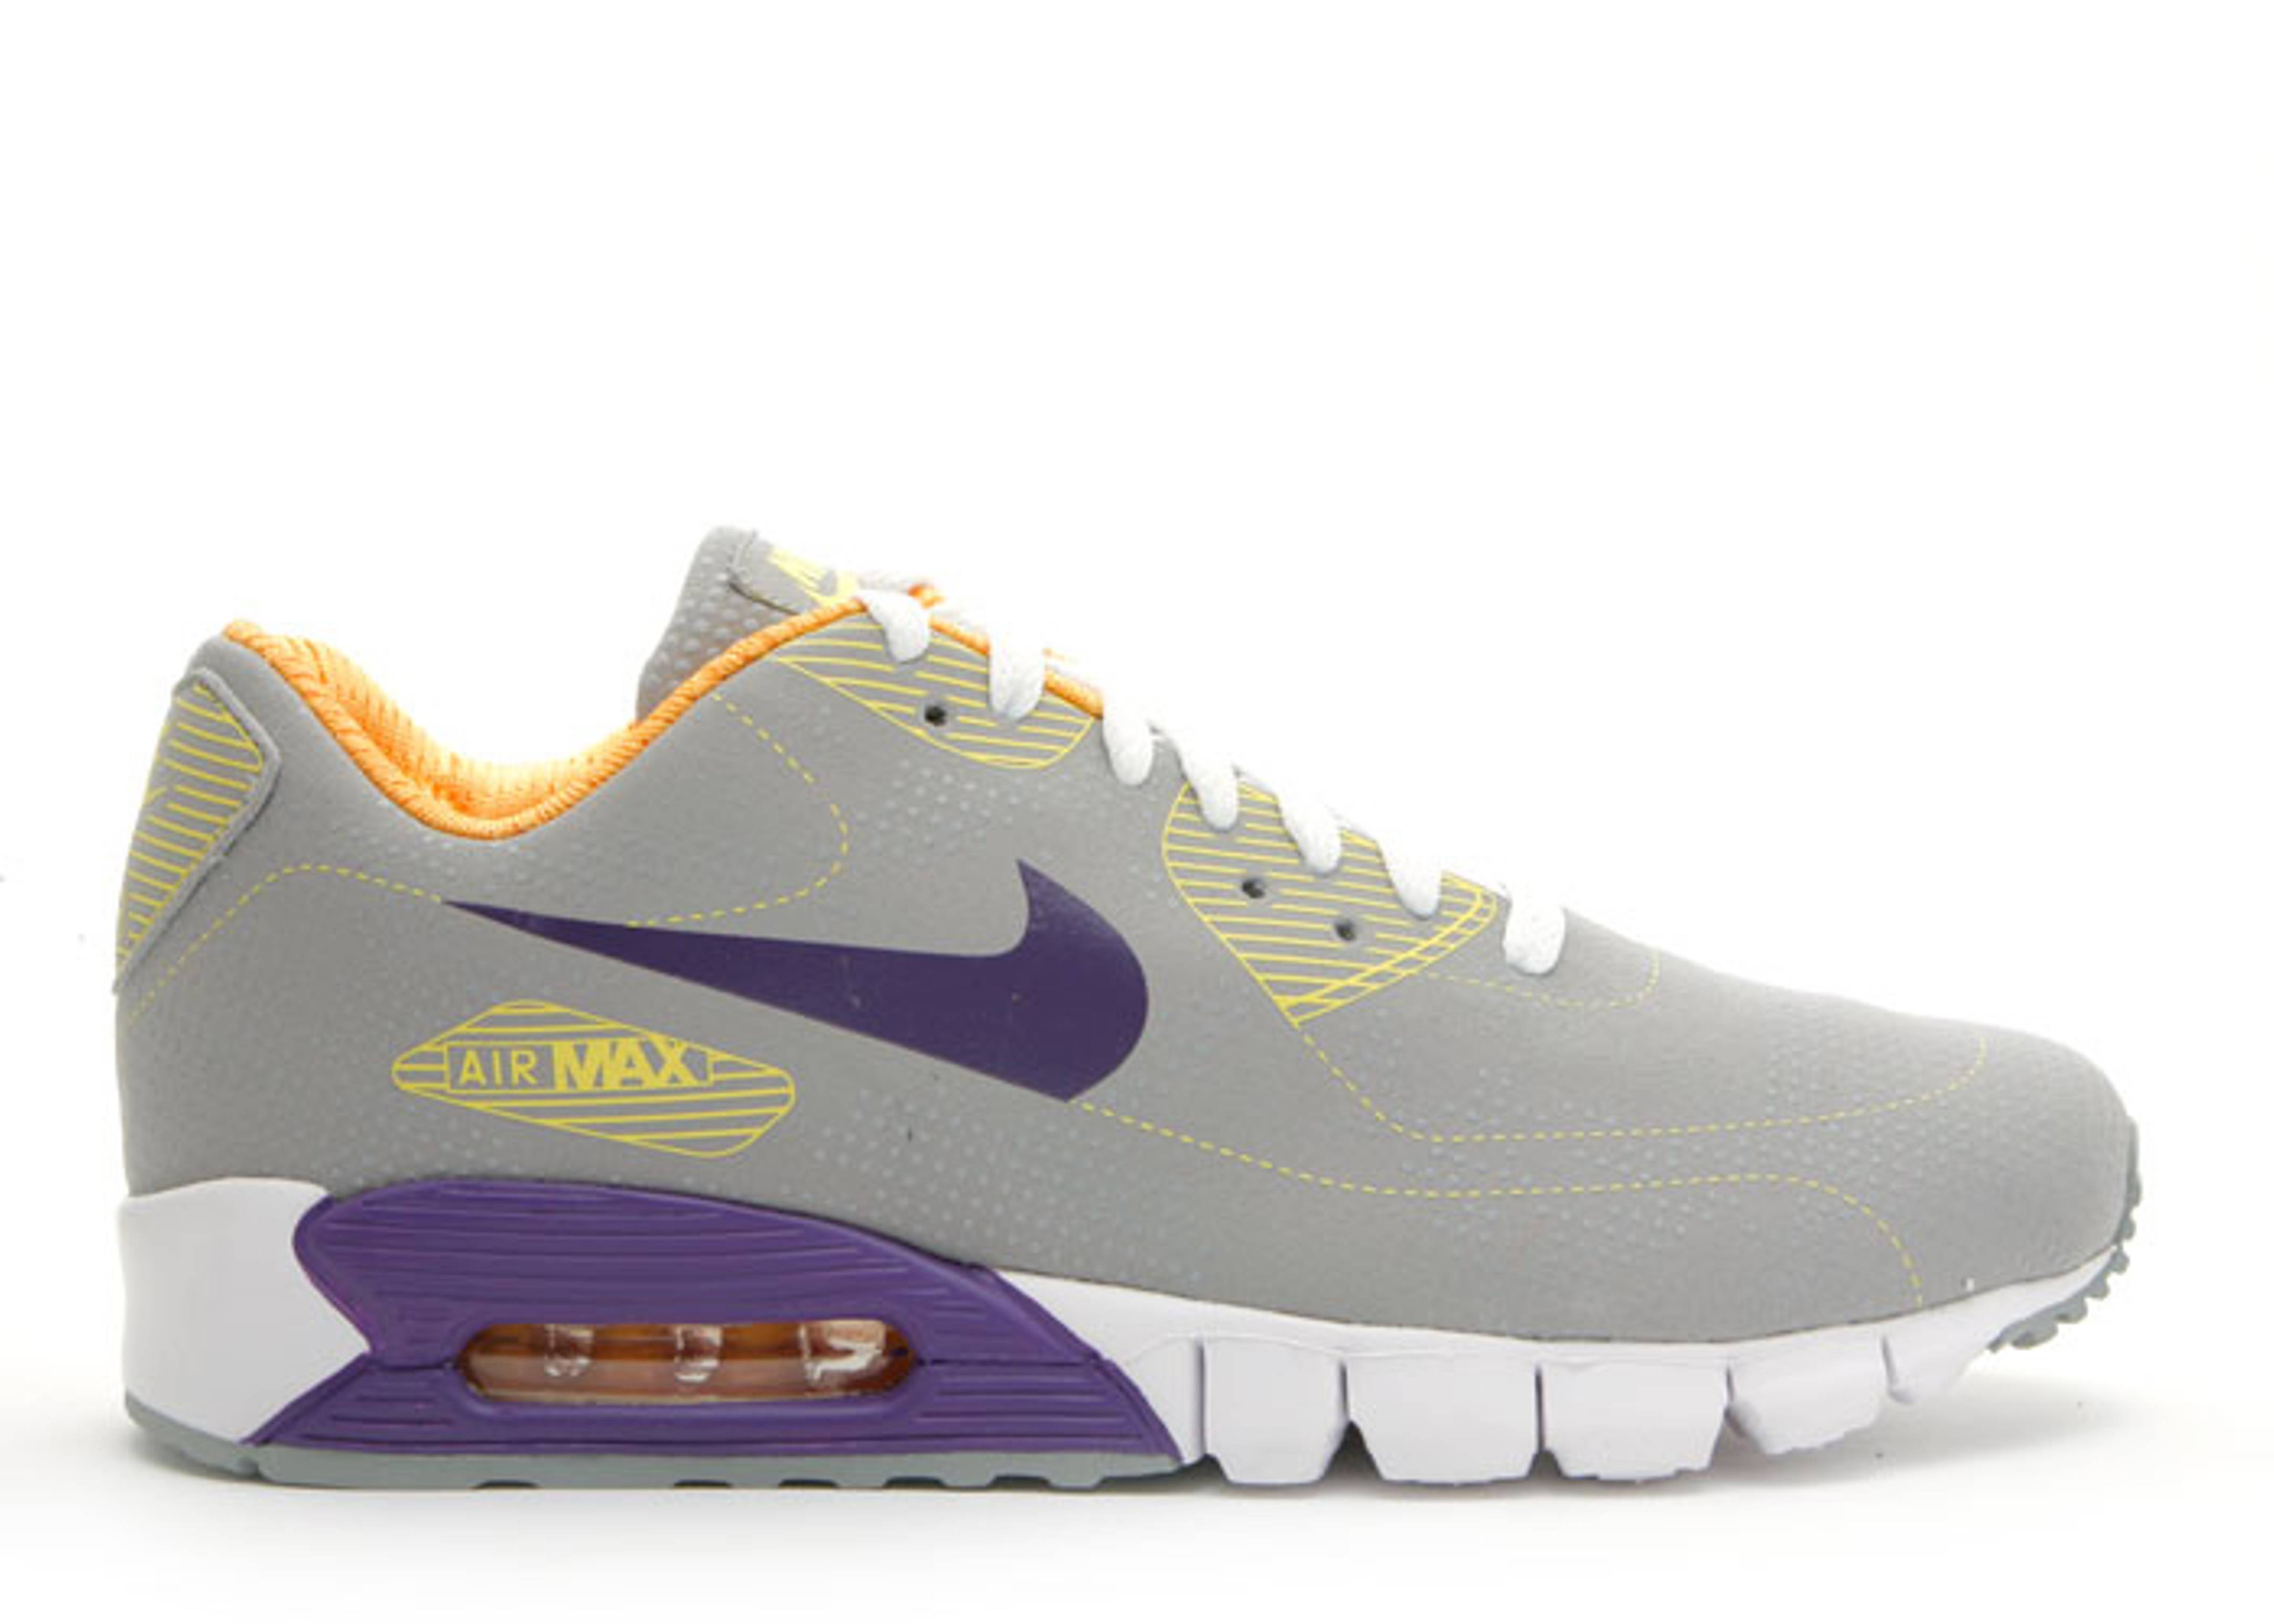 outlet store c7909 386a8 Air Max 90 Current Moire - Nike - 344081 051 - medium grey club  purple-white-sunbeam-vibrant yellow   Flight Club